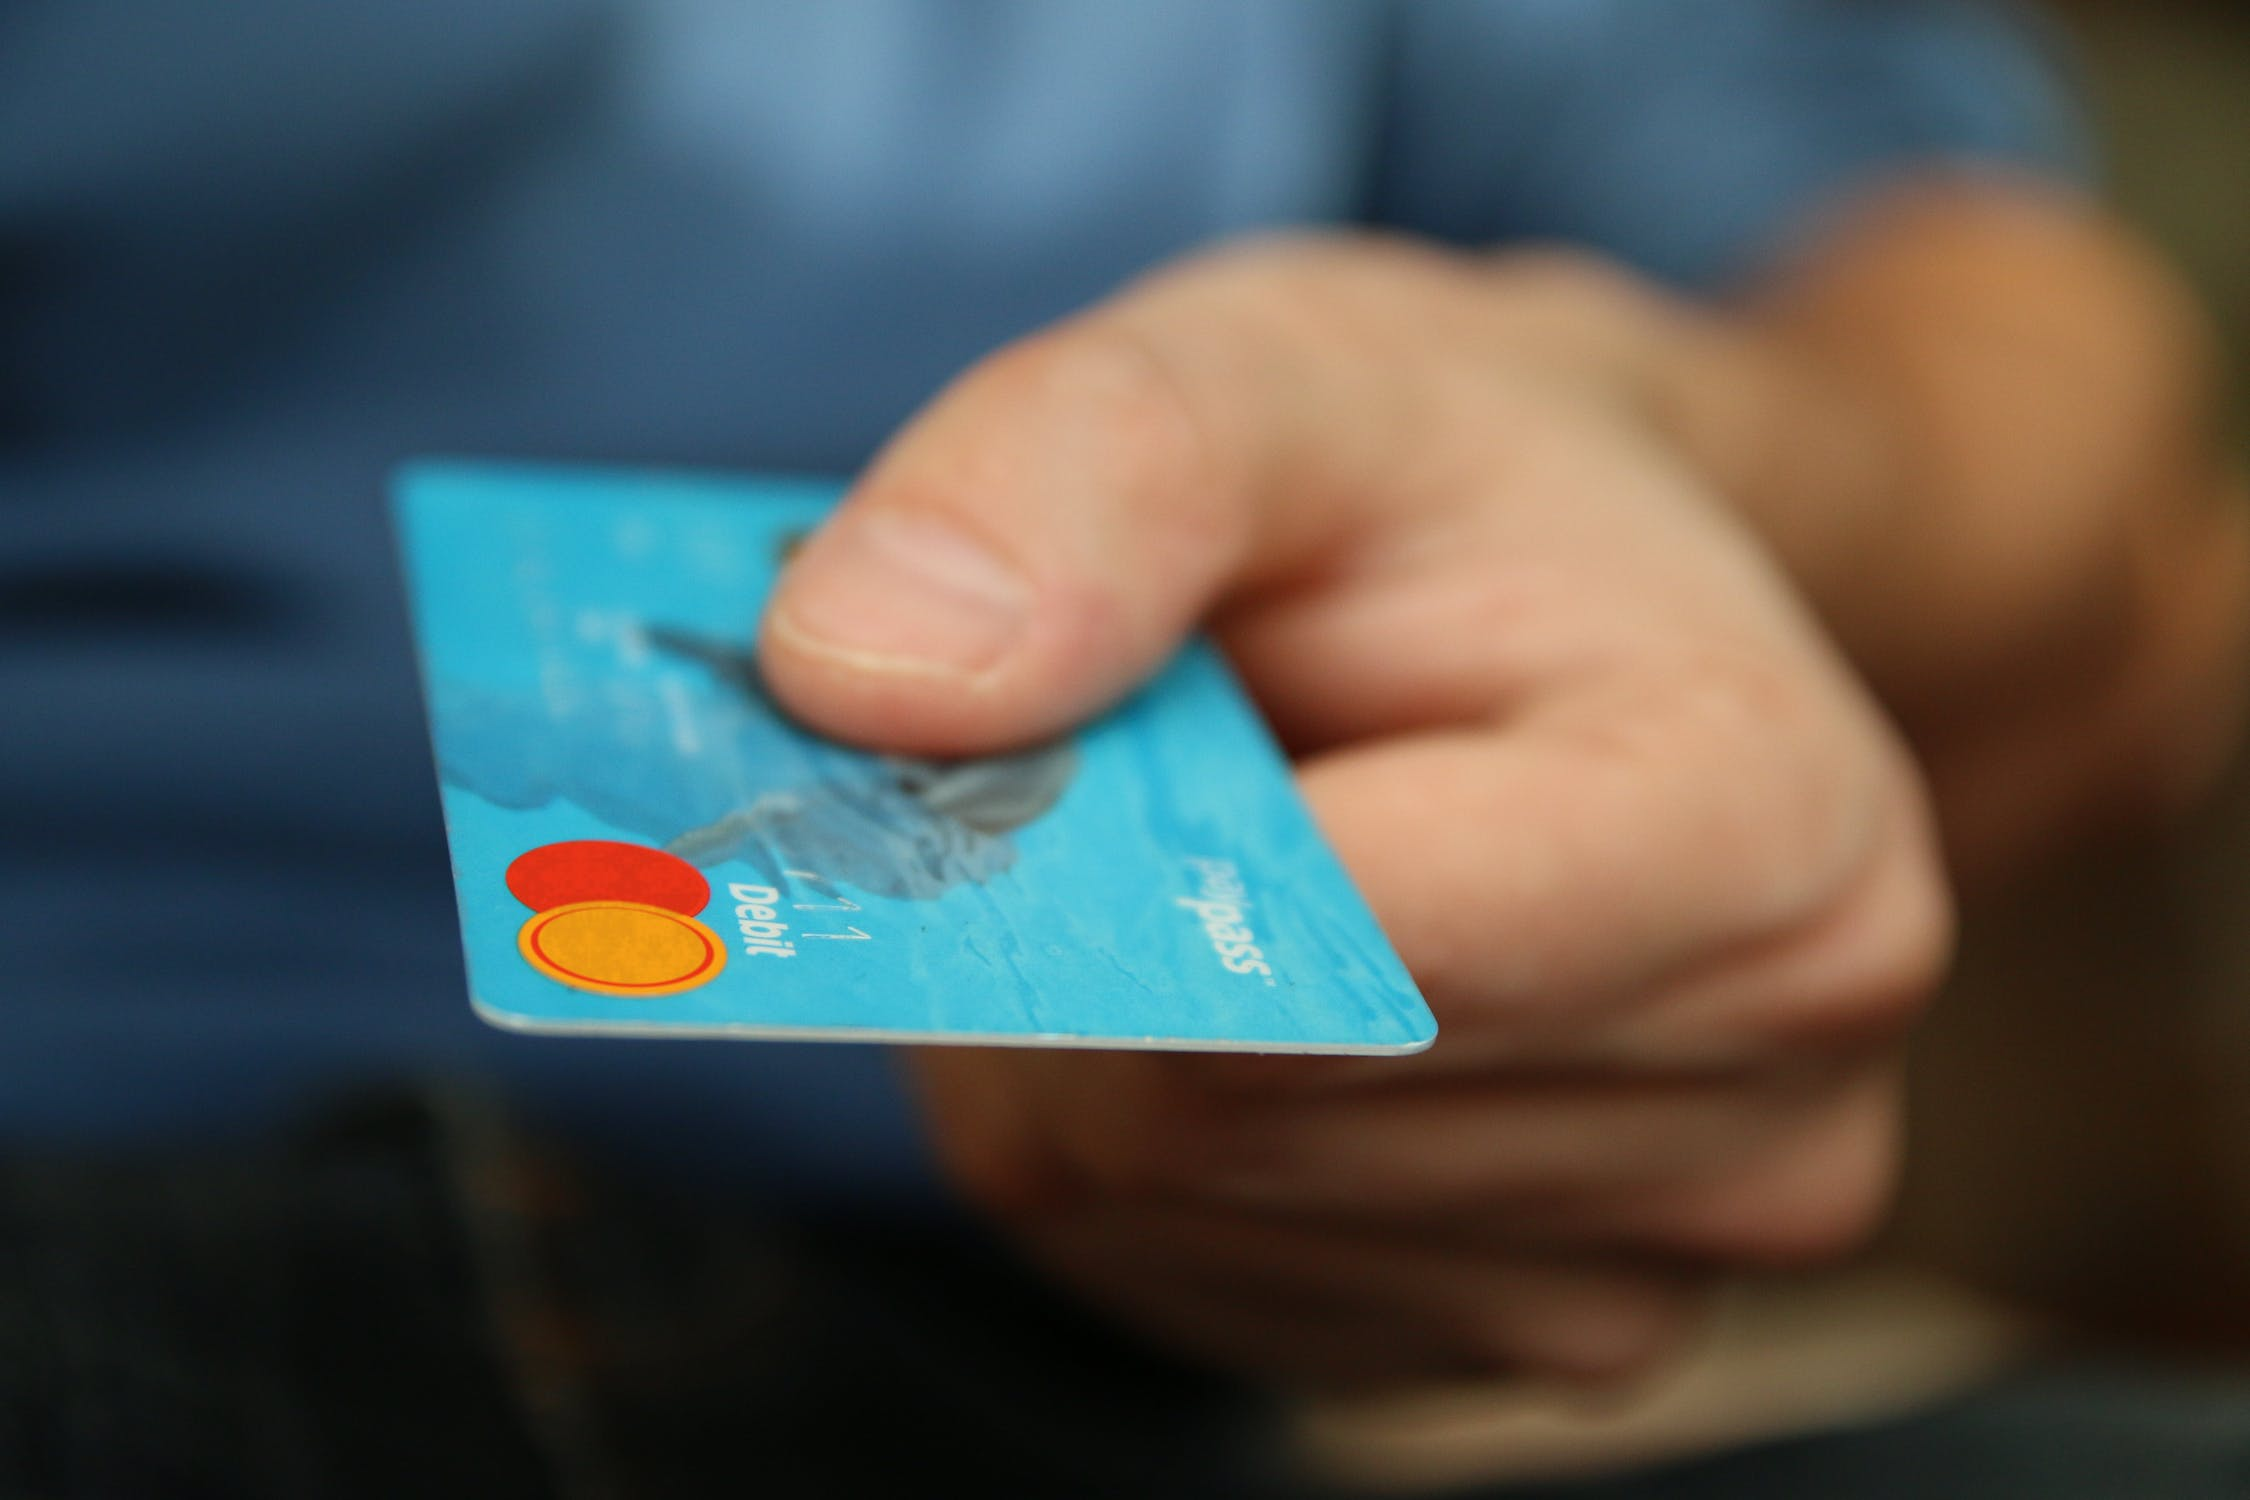 The Worst Ways To Deal With Debt